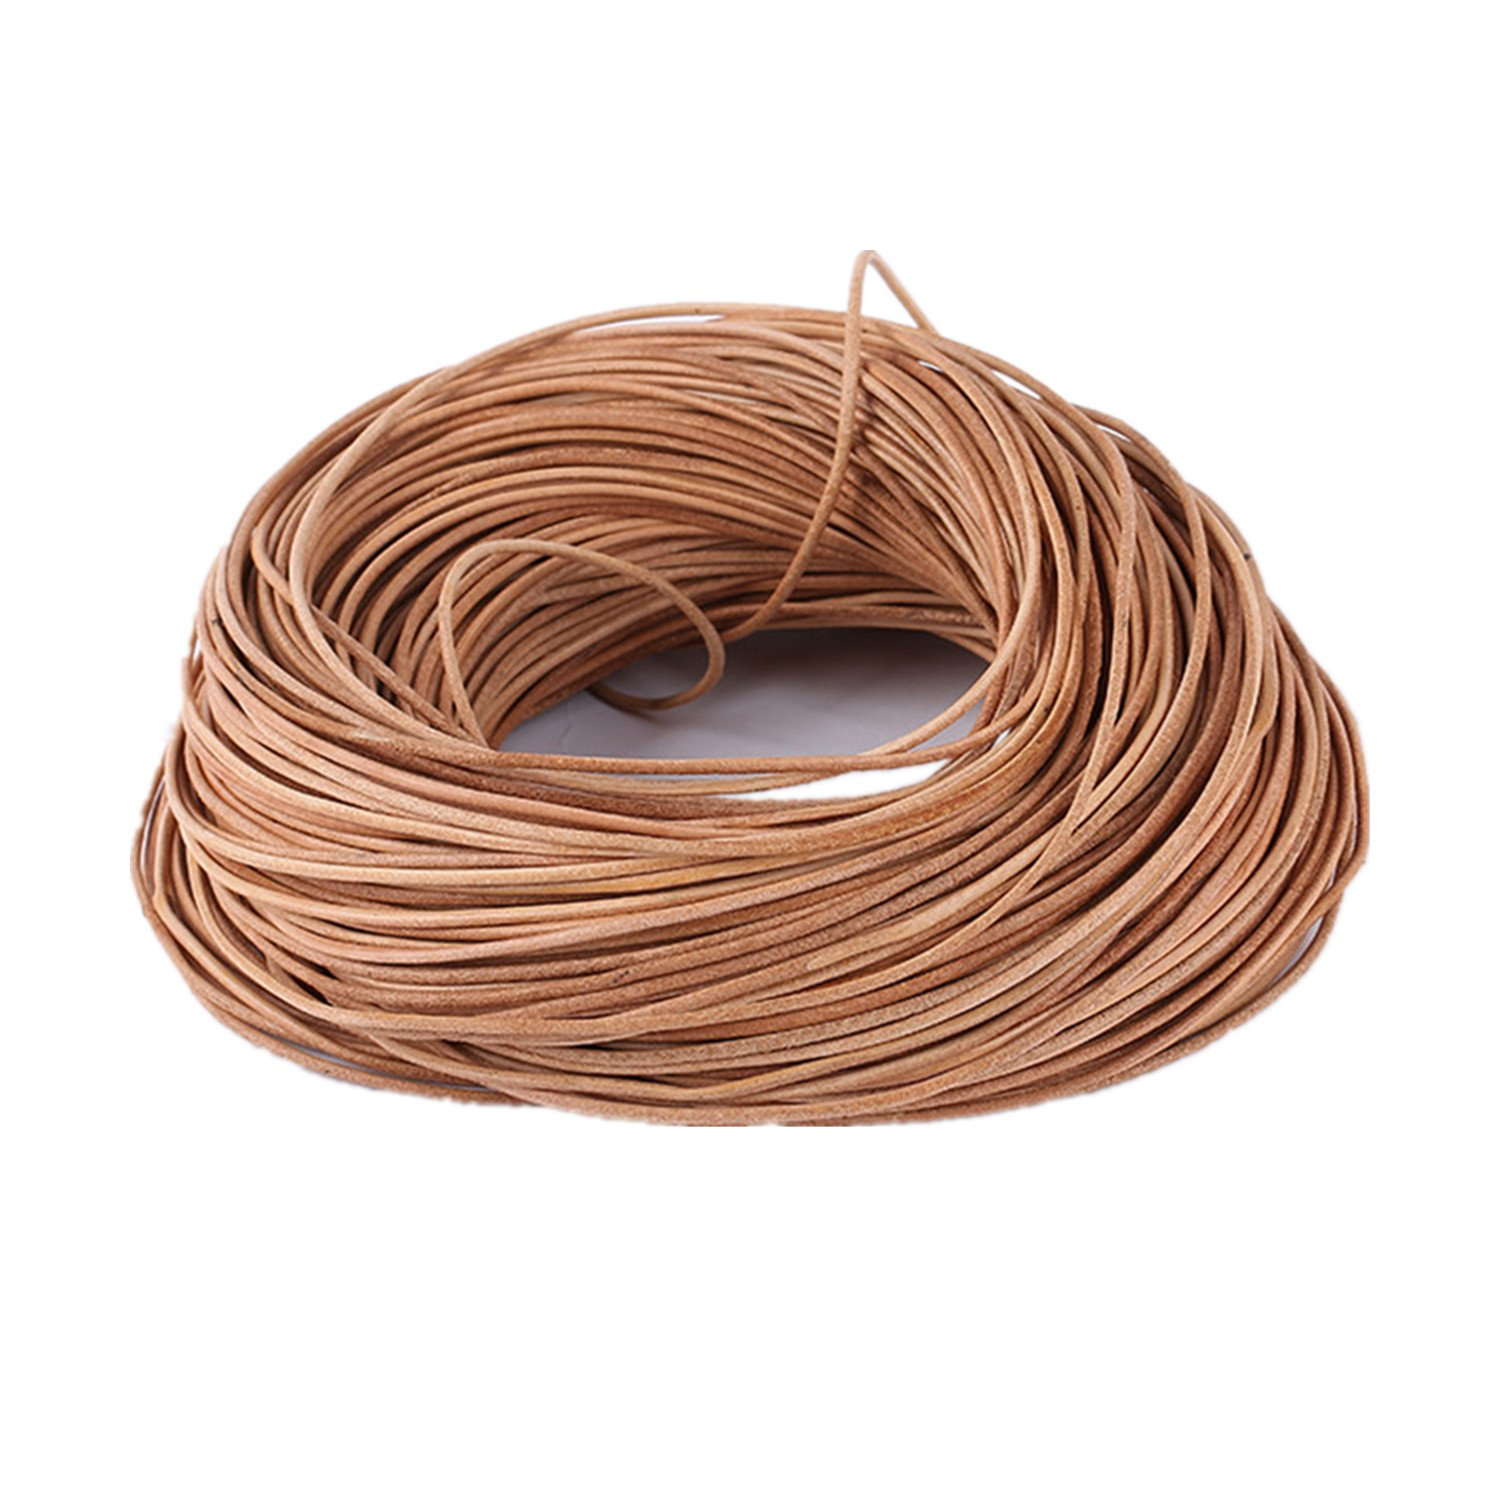 GraceAngie Genuine Leather Round 1mm Cords For Bracelet Neckacle Beading Jewelry Making 50 Yards (45 meter)